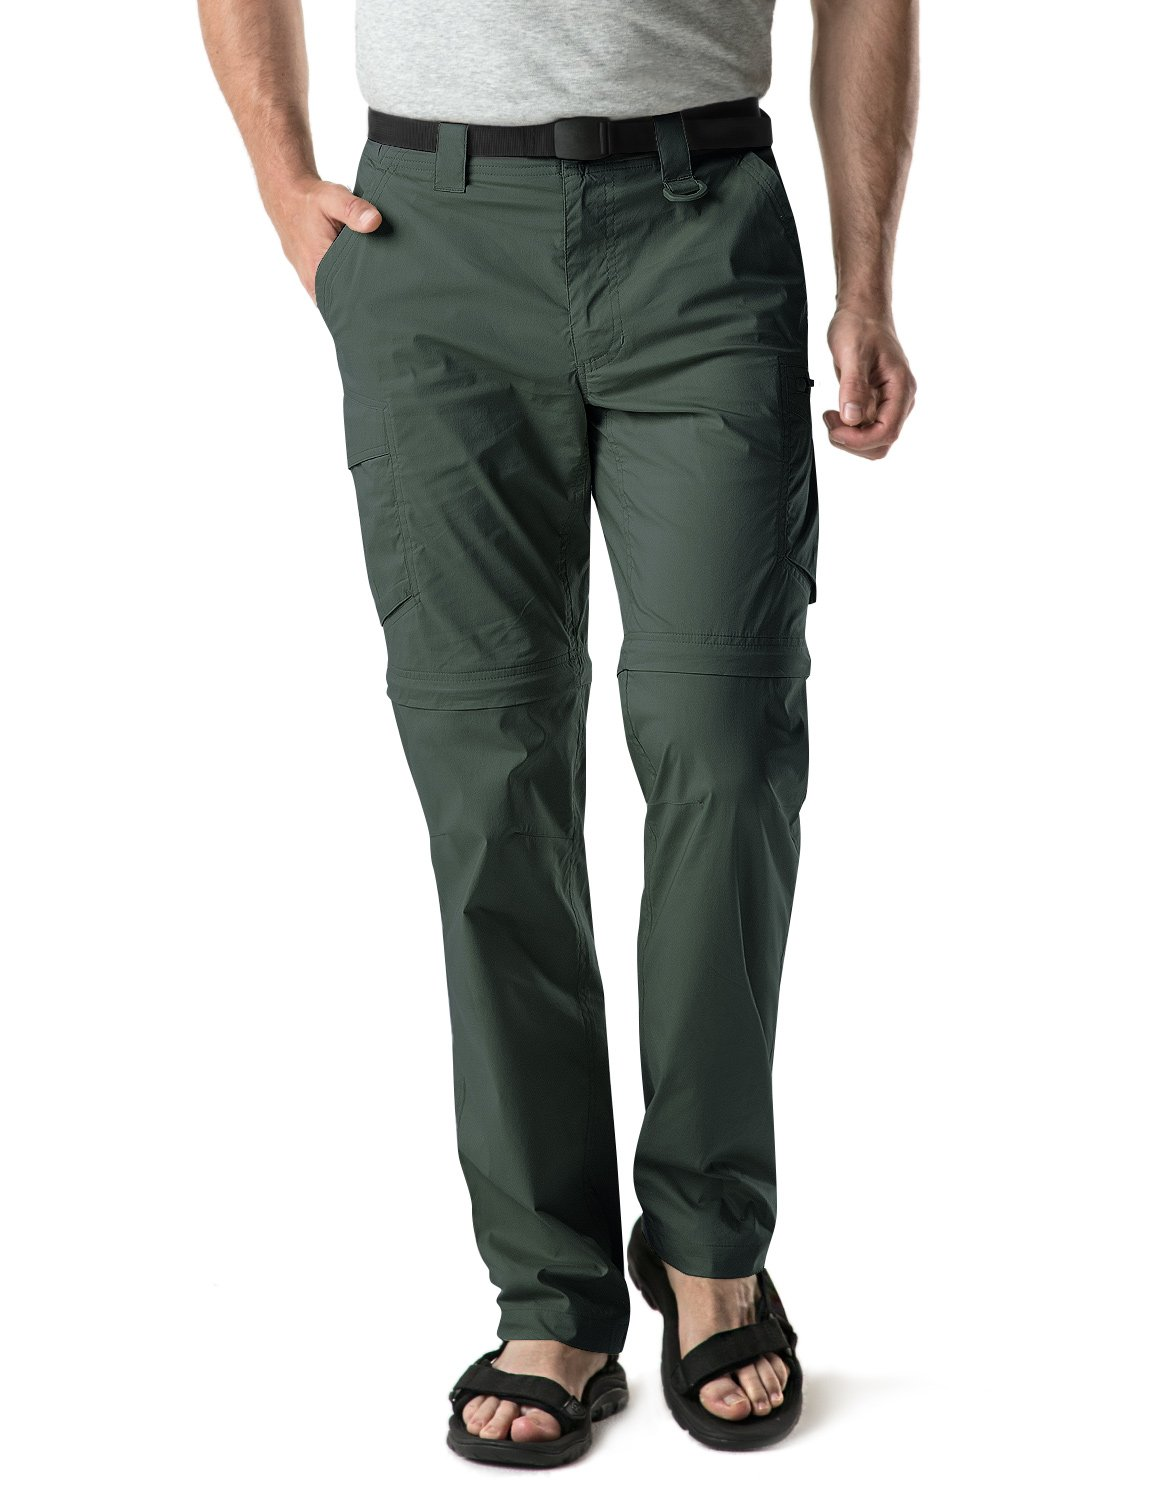 CQR Men's Convertible Pants Zipp Off Stretch Durable UPF 50+ Quick Dry Cargo Shorts Trousers, Convertible Zip Cargo with Belt(txp402) - Green, 32W/30L by CQR